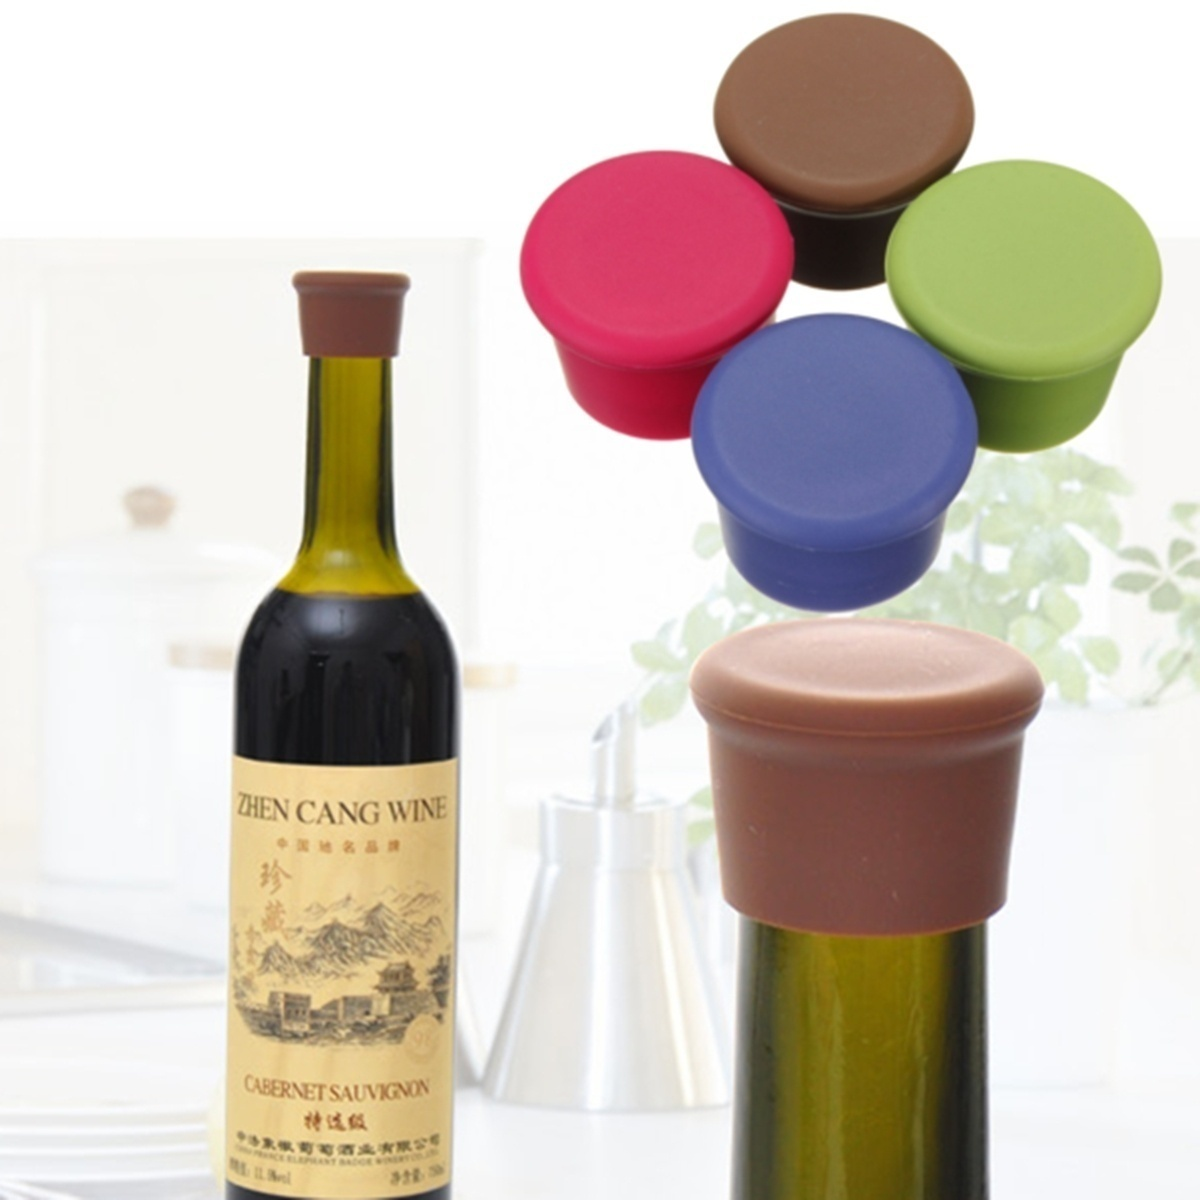 Silicone Wine Bottle Stoppers Candy Color Leak Free Wine Bottle Sealers For Red Wine And Beer Bottle Cap Bar Accessories